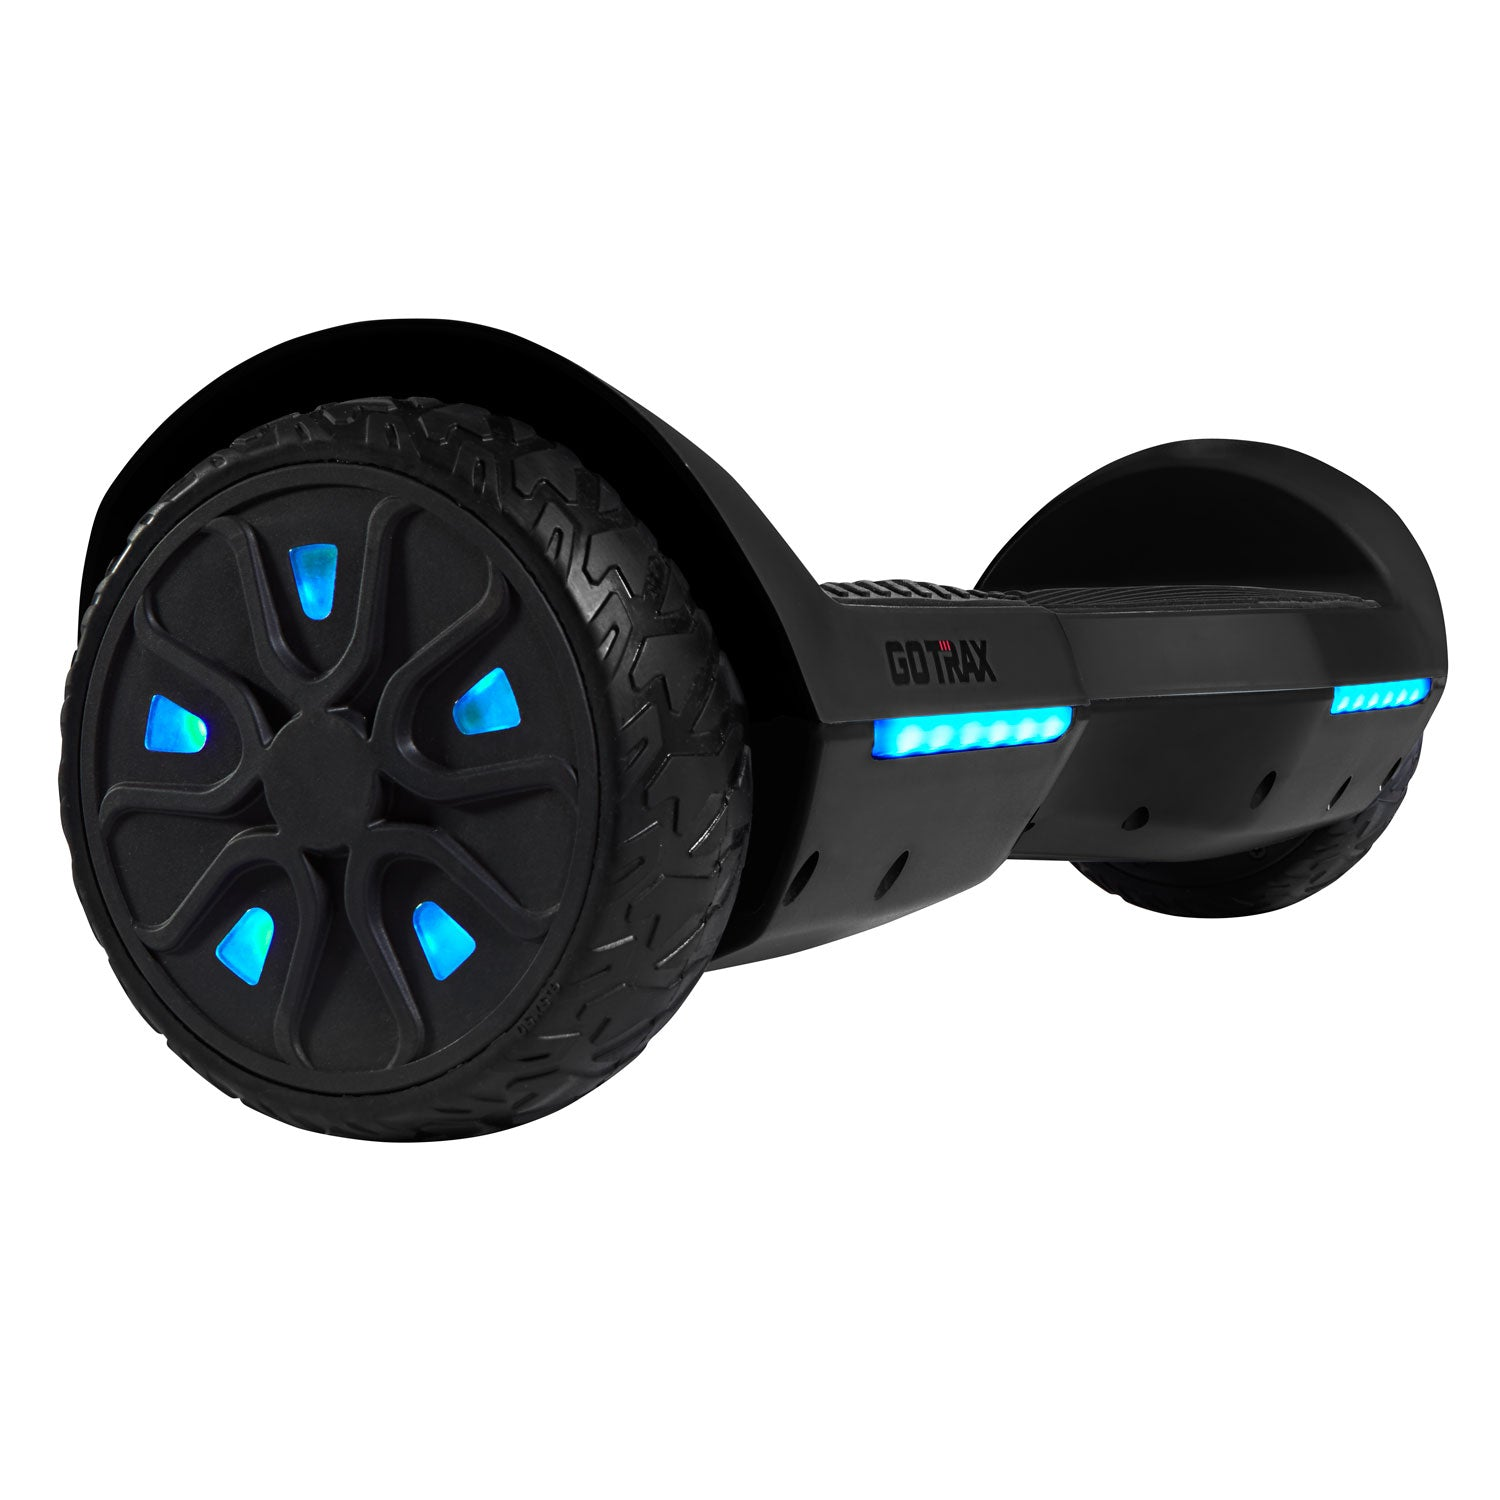 black srx a6 bluetooth hoverboard Main image